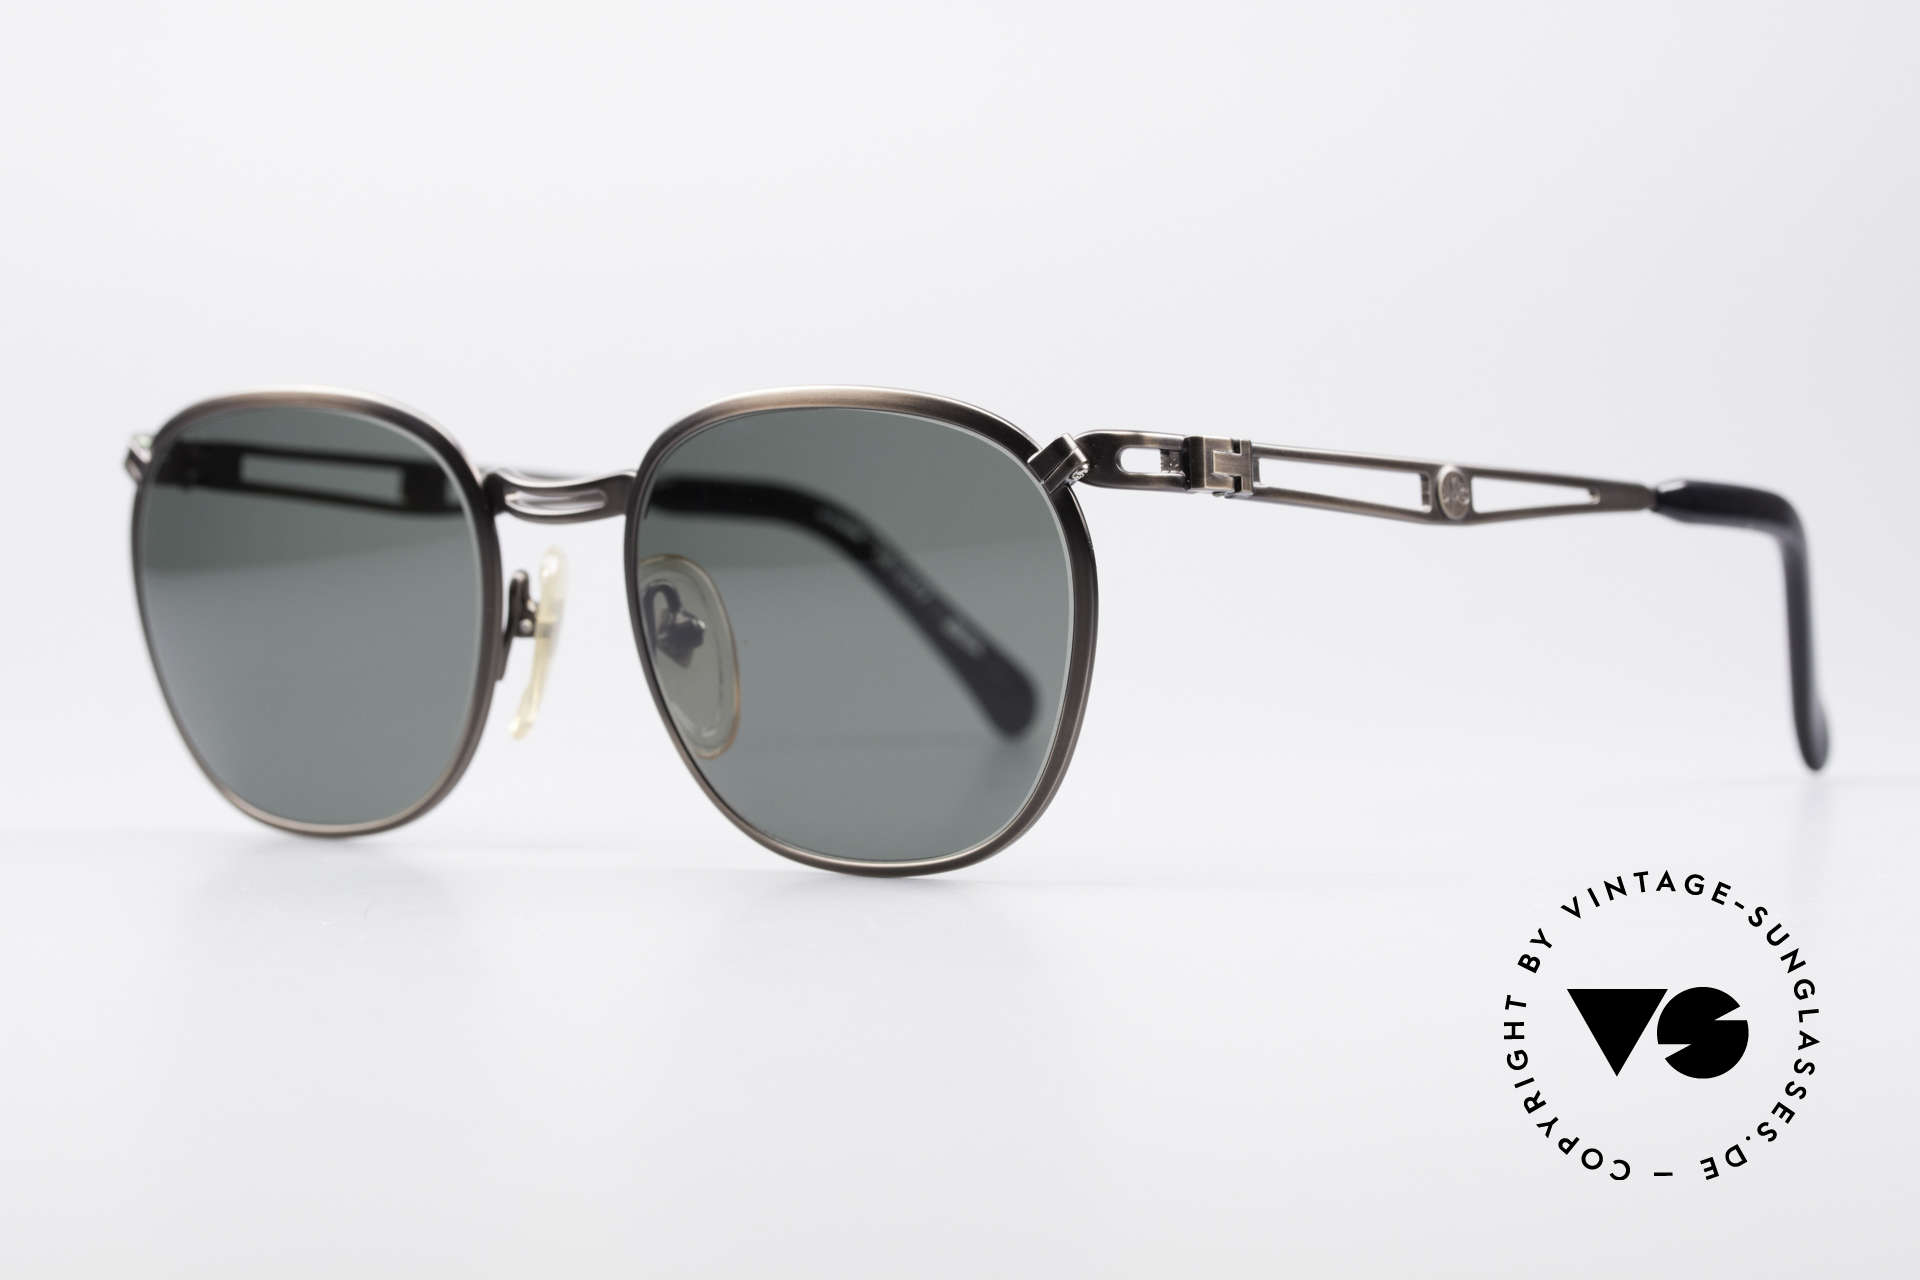 Jean Paul Gaultier 56-2177 Rare Designer Sunglasses, but high-end quality (monolithic), typically JPG!, Made for Men and Women